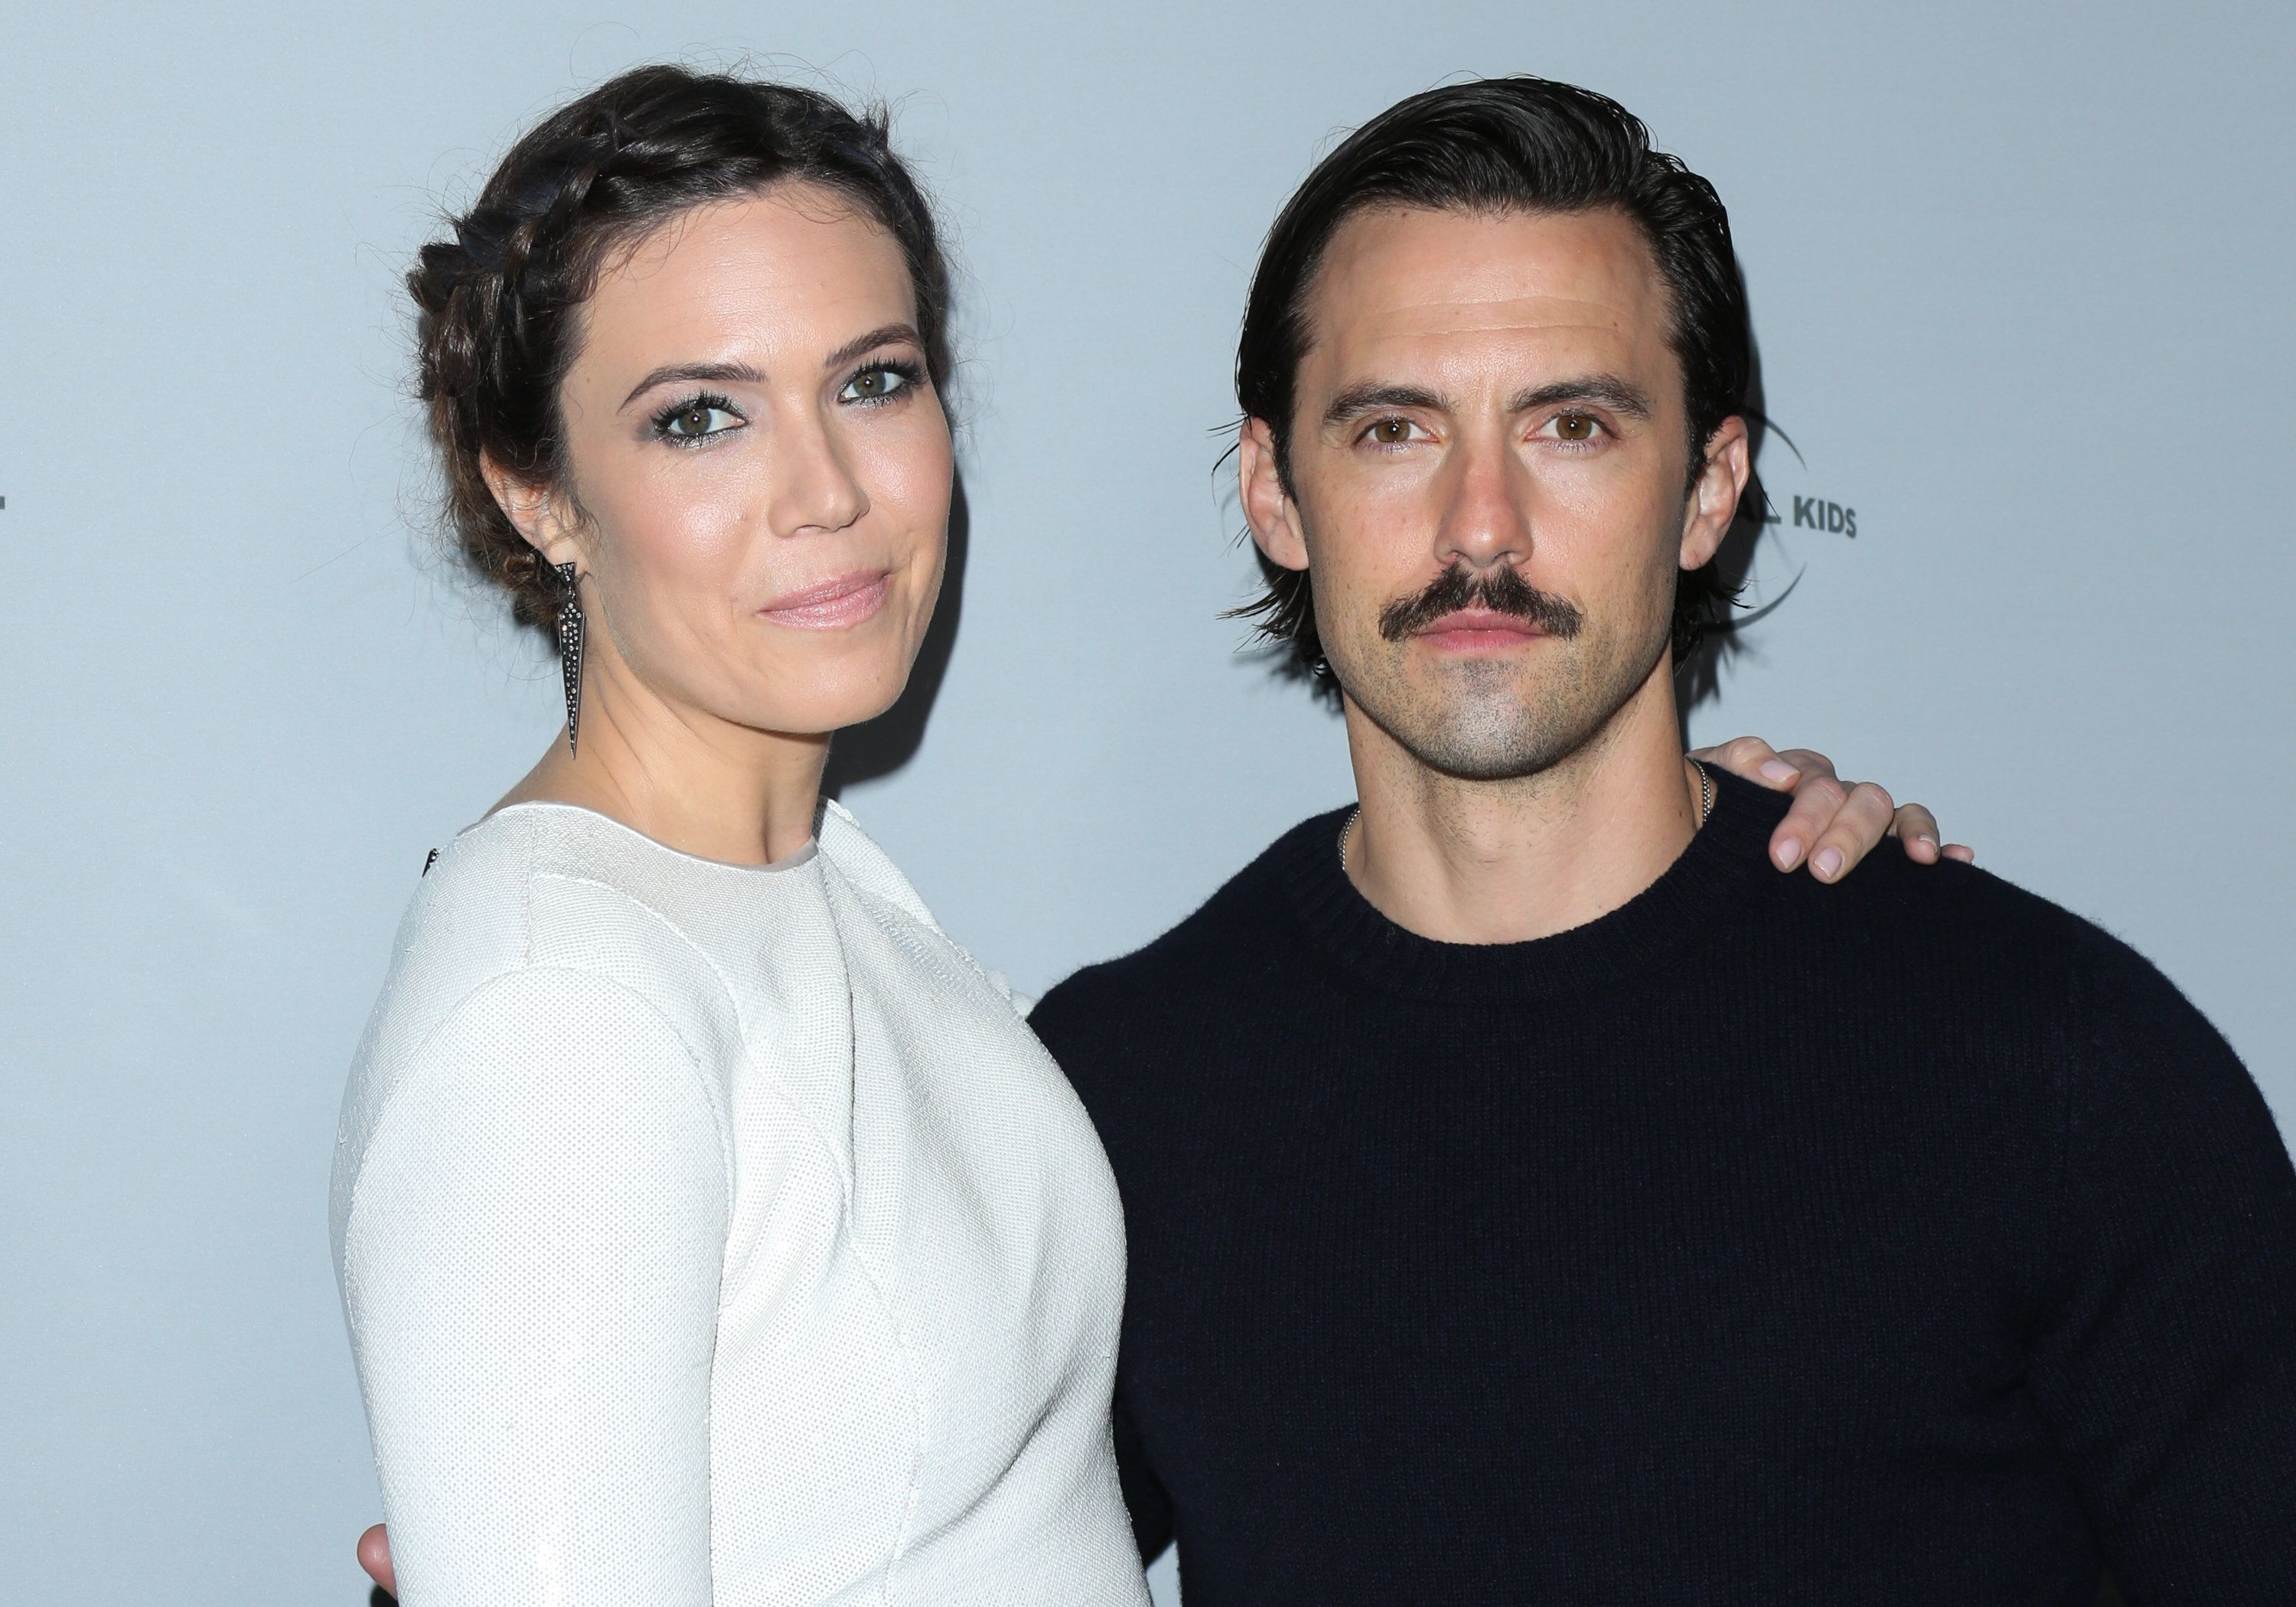 Mandy Moore And Milo Ventimiglia Have Watched Almost All Of  This Is     Mandy Moore And Milo Ventimiglia Have Watched Almost All Of  This Is Us   Together   HuffPost